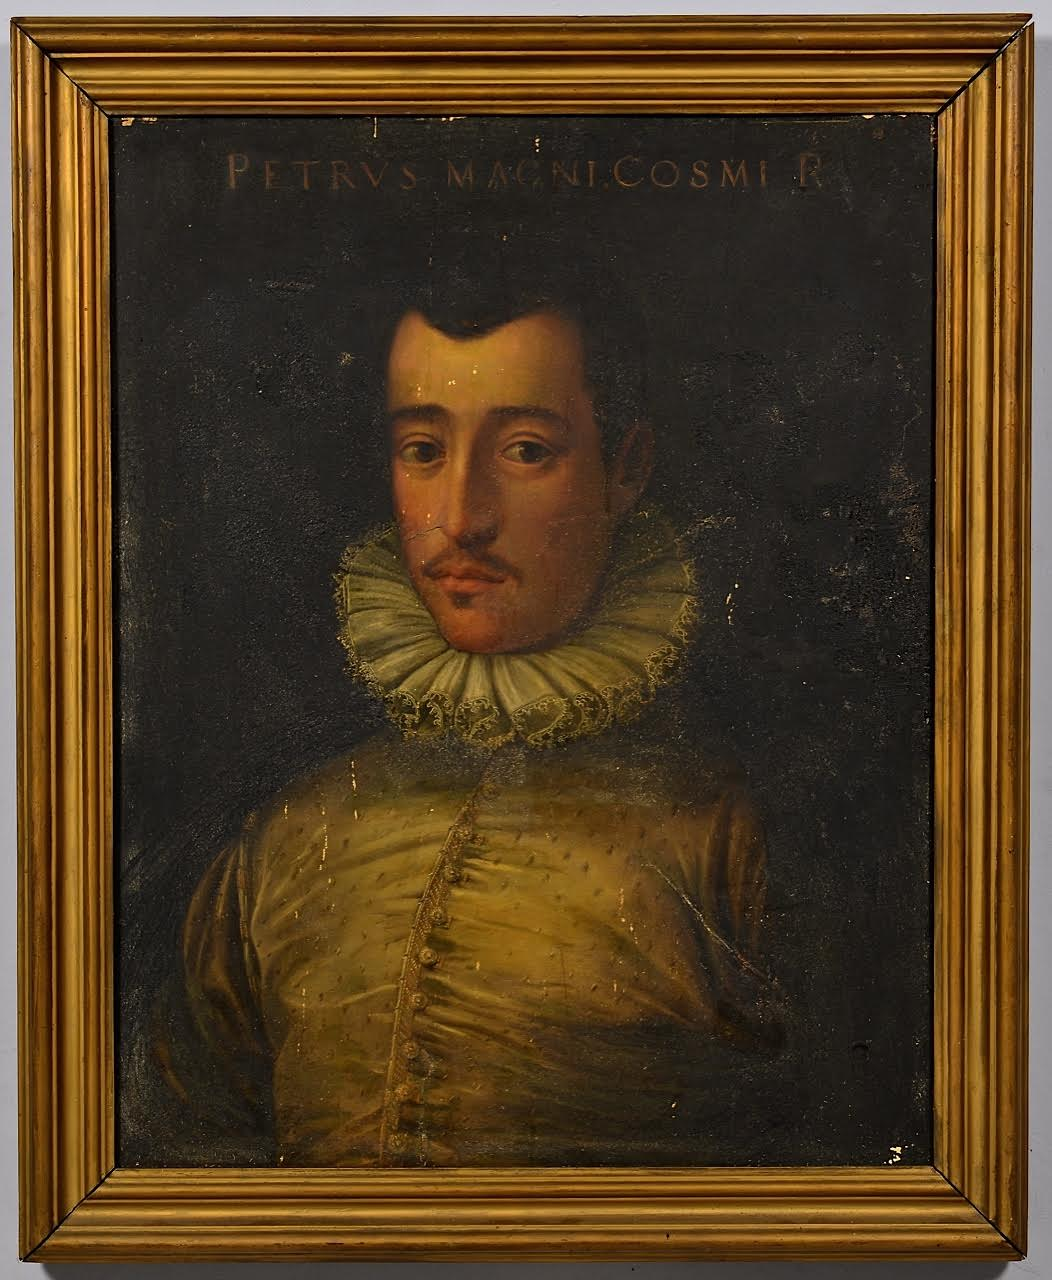 Five centuries of art are represented in the auction. One of the oldest objects is this 16th century Florentine portrait of Pietro di Cosimo del Medici. Estimate: $4,000-$5,000. Case Antiques Auction image